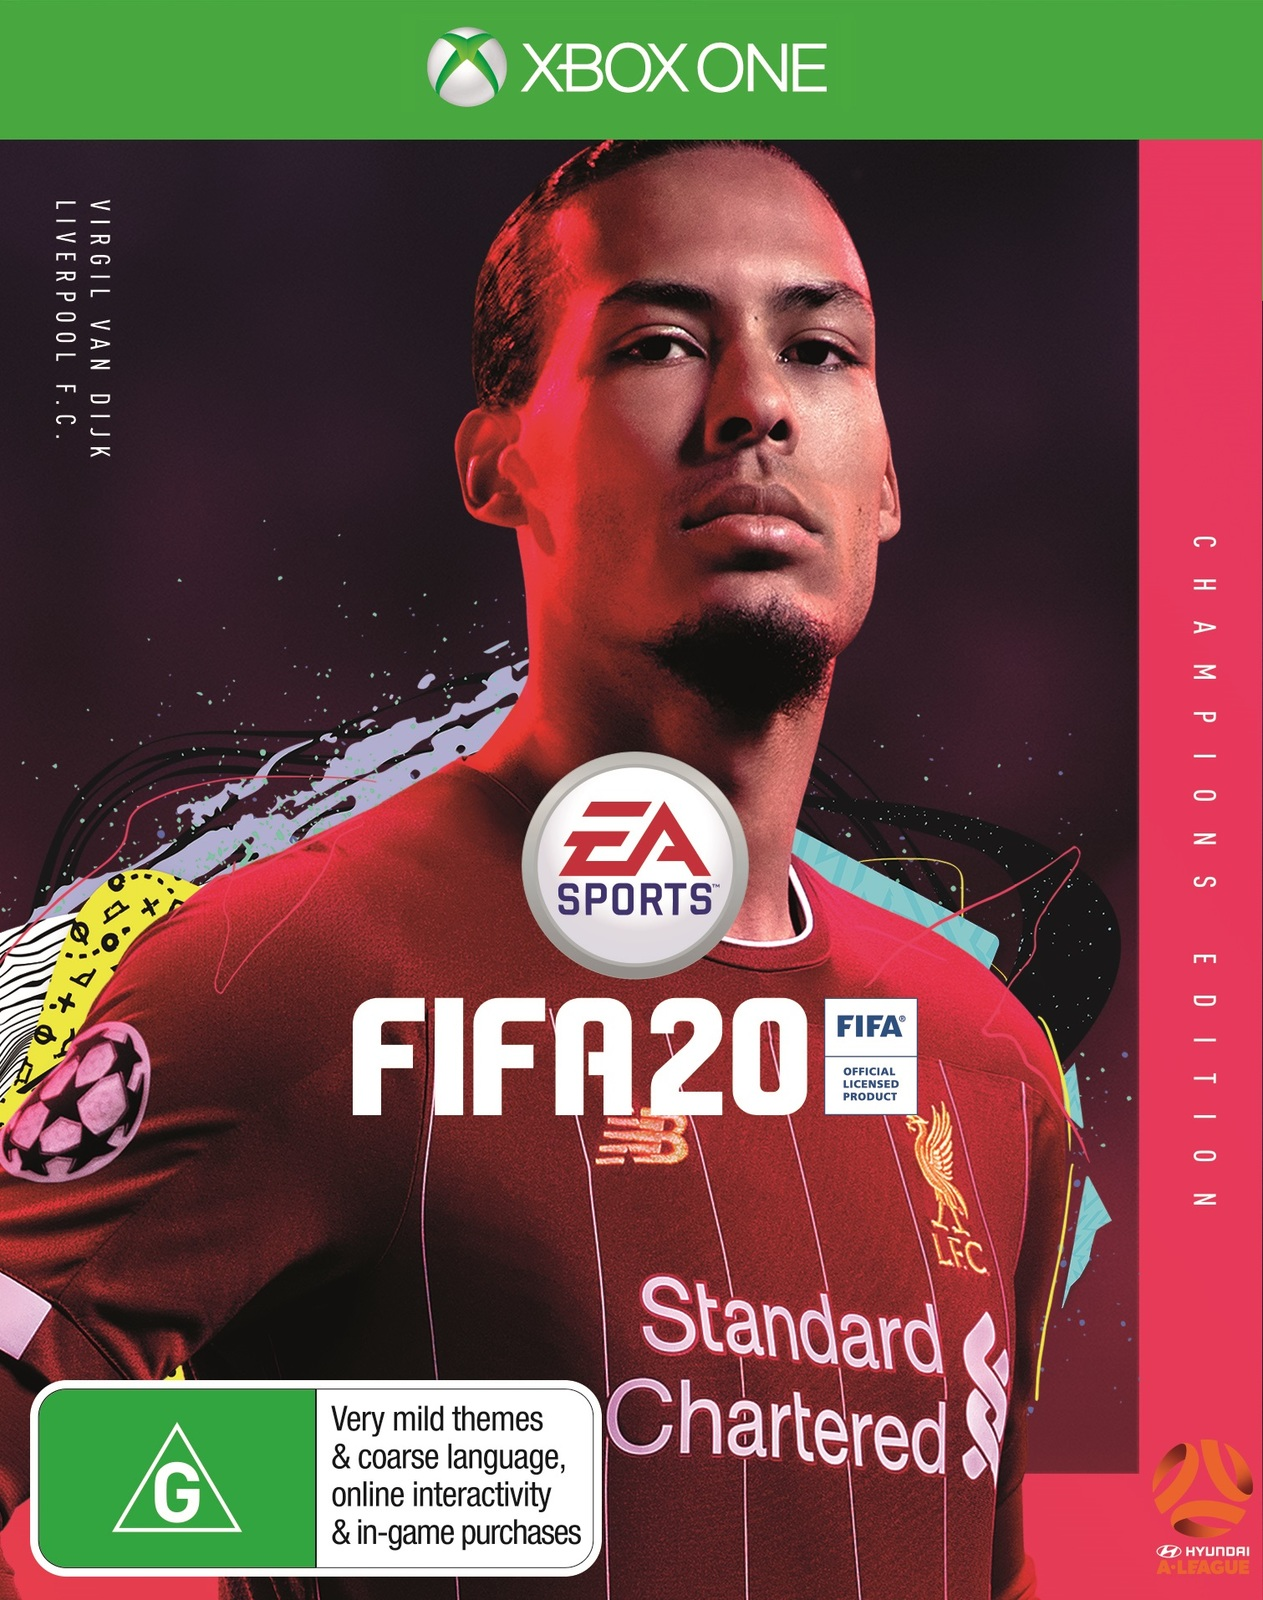 FIFA 20 Champions Edition for Xbox One image